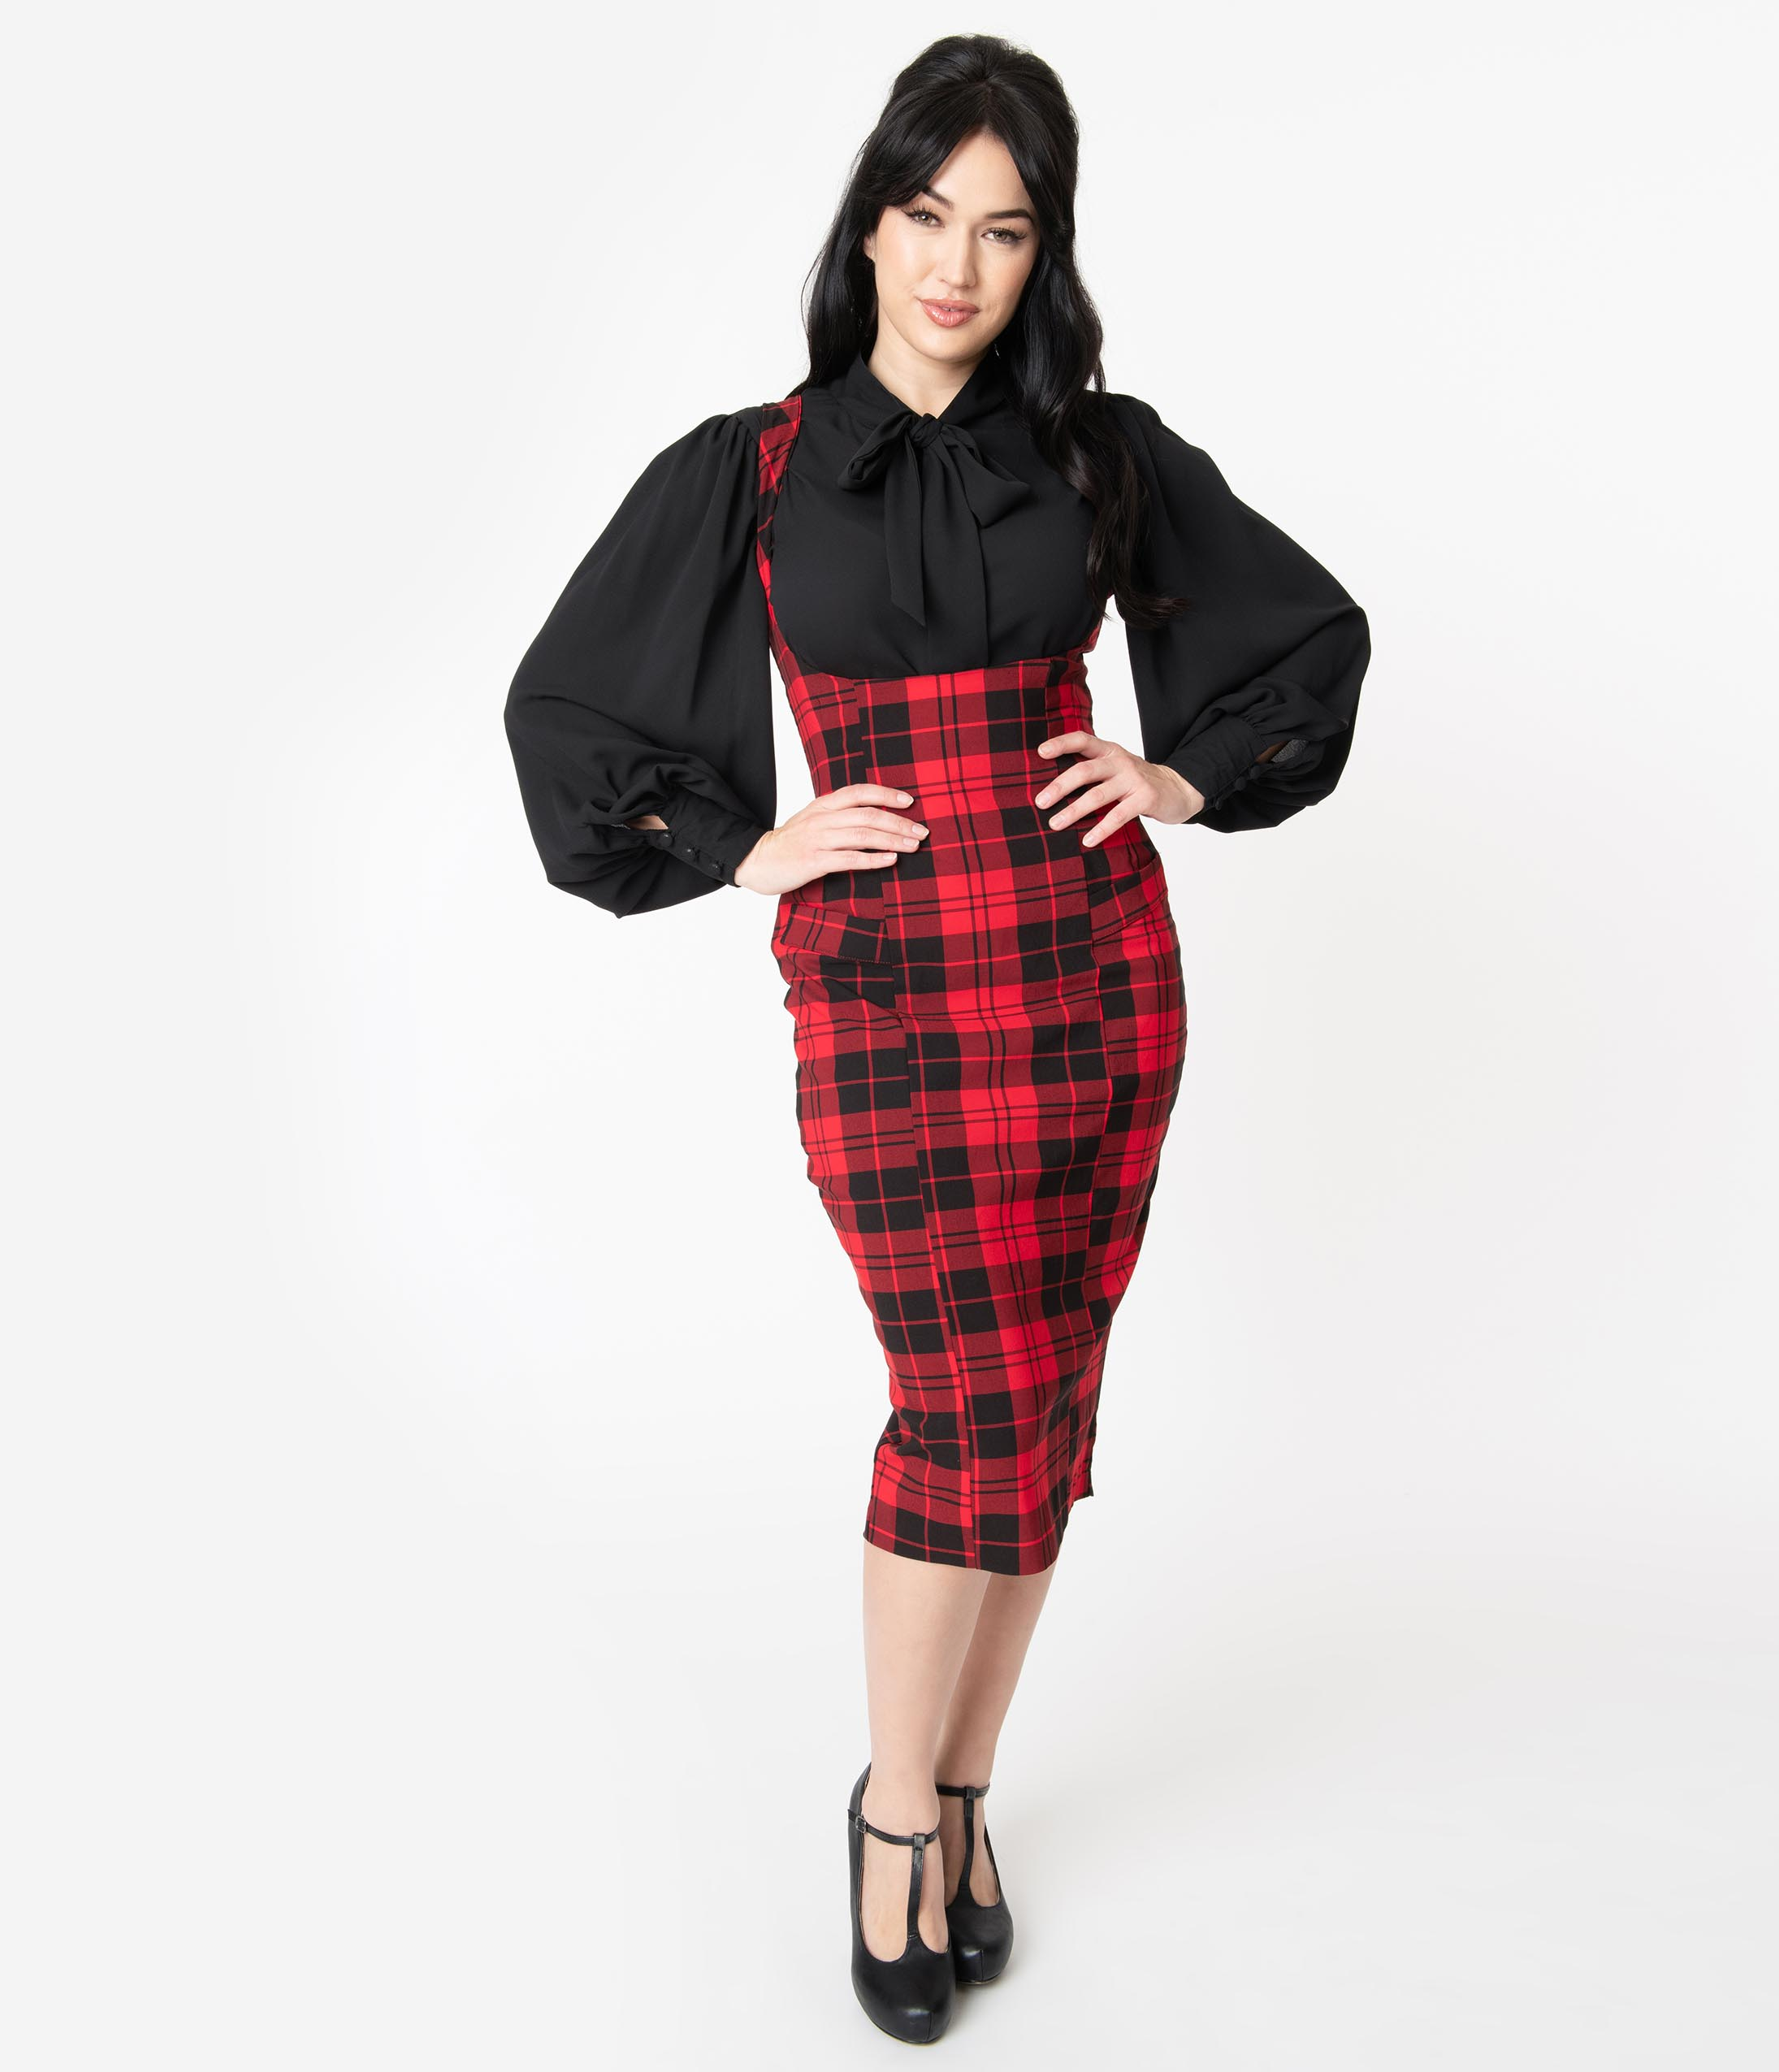 1950s Swing Skirt, Poodle Skirt, Pencil Skirts Unique Vintage Red  Black Plaid Fontaine Suspender Pencil Skirt $78.00 AT vintagedancer.com